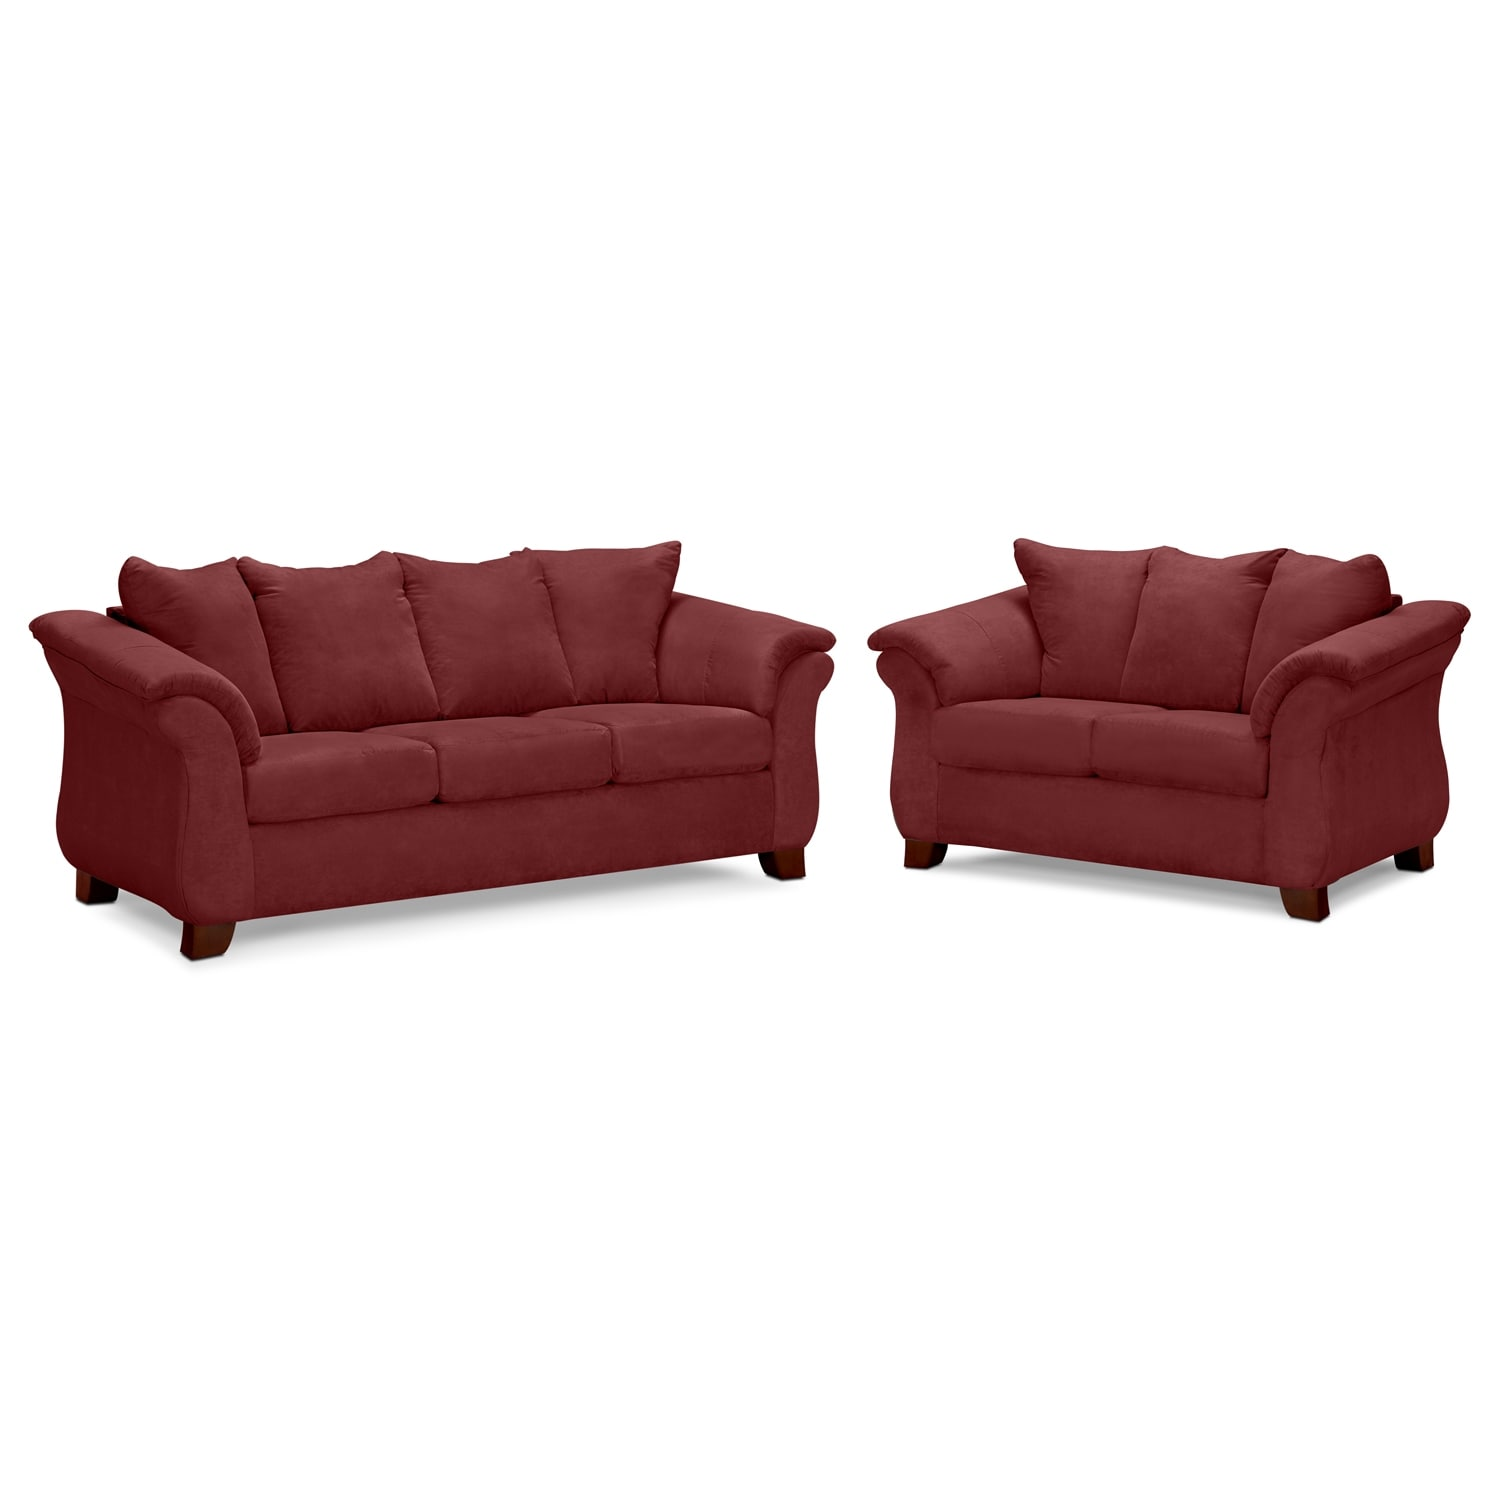 Adrian Red Upholstery 2 Pc Living Room Value City Furniture